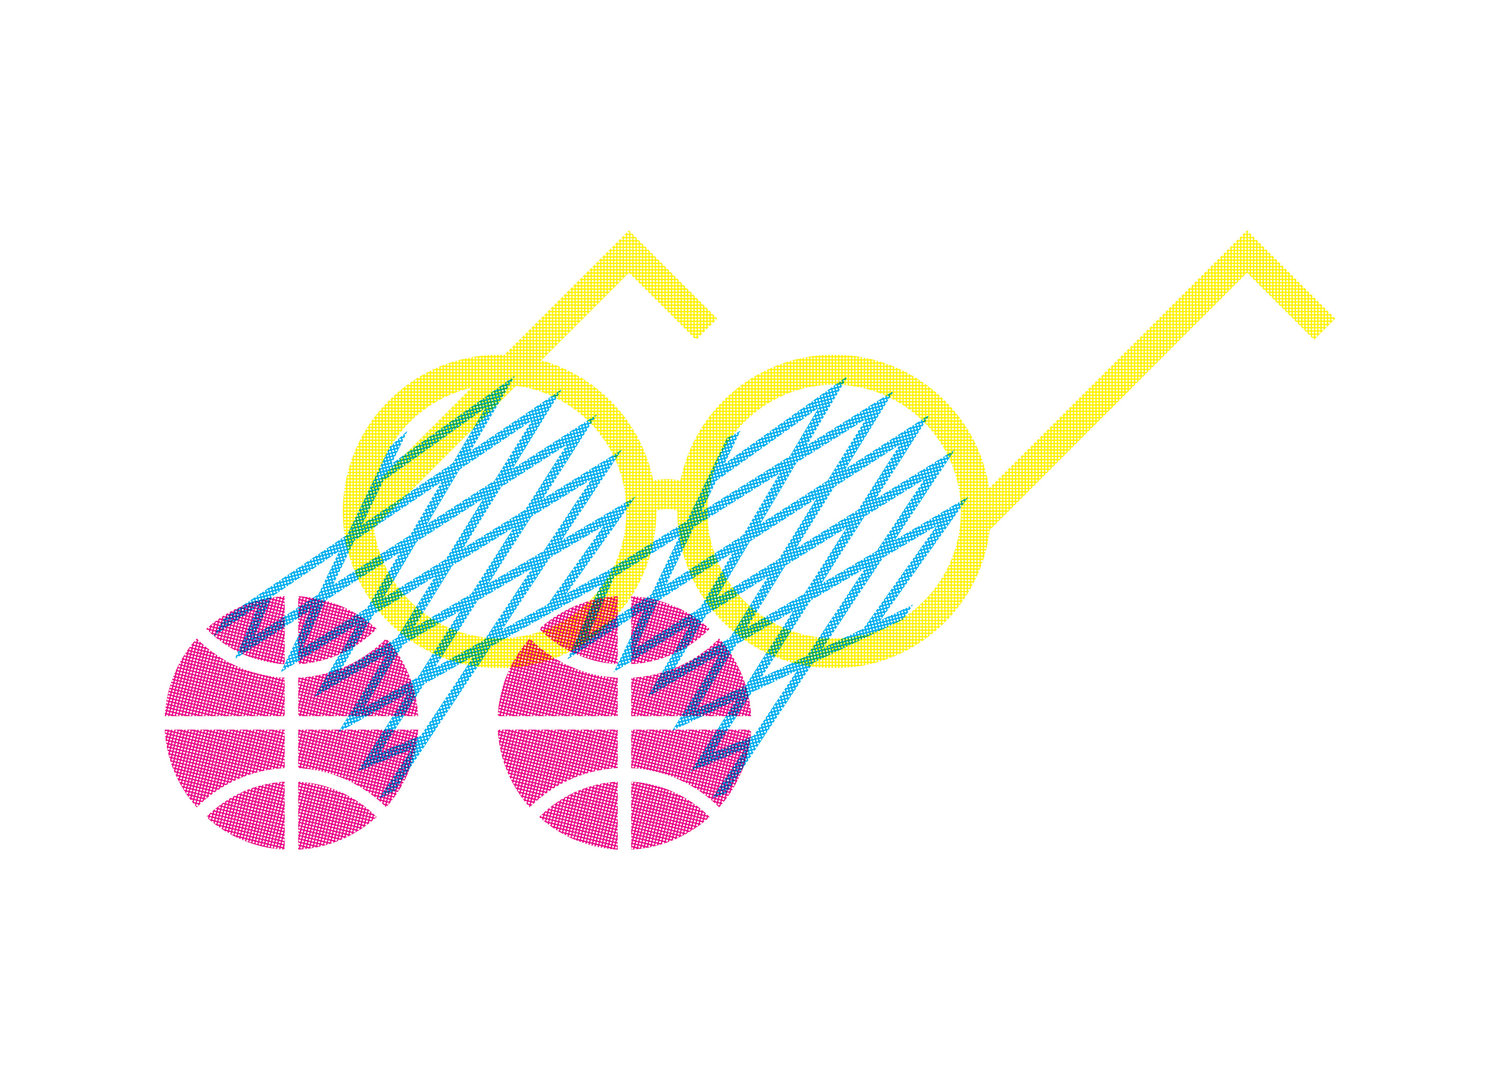 illustration_andre_levy_zhion_vector_conceptual_minimal_sports_reading_press_retro_pictogram_glasses_basketball.jpg